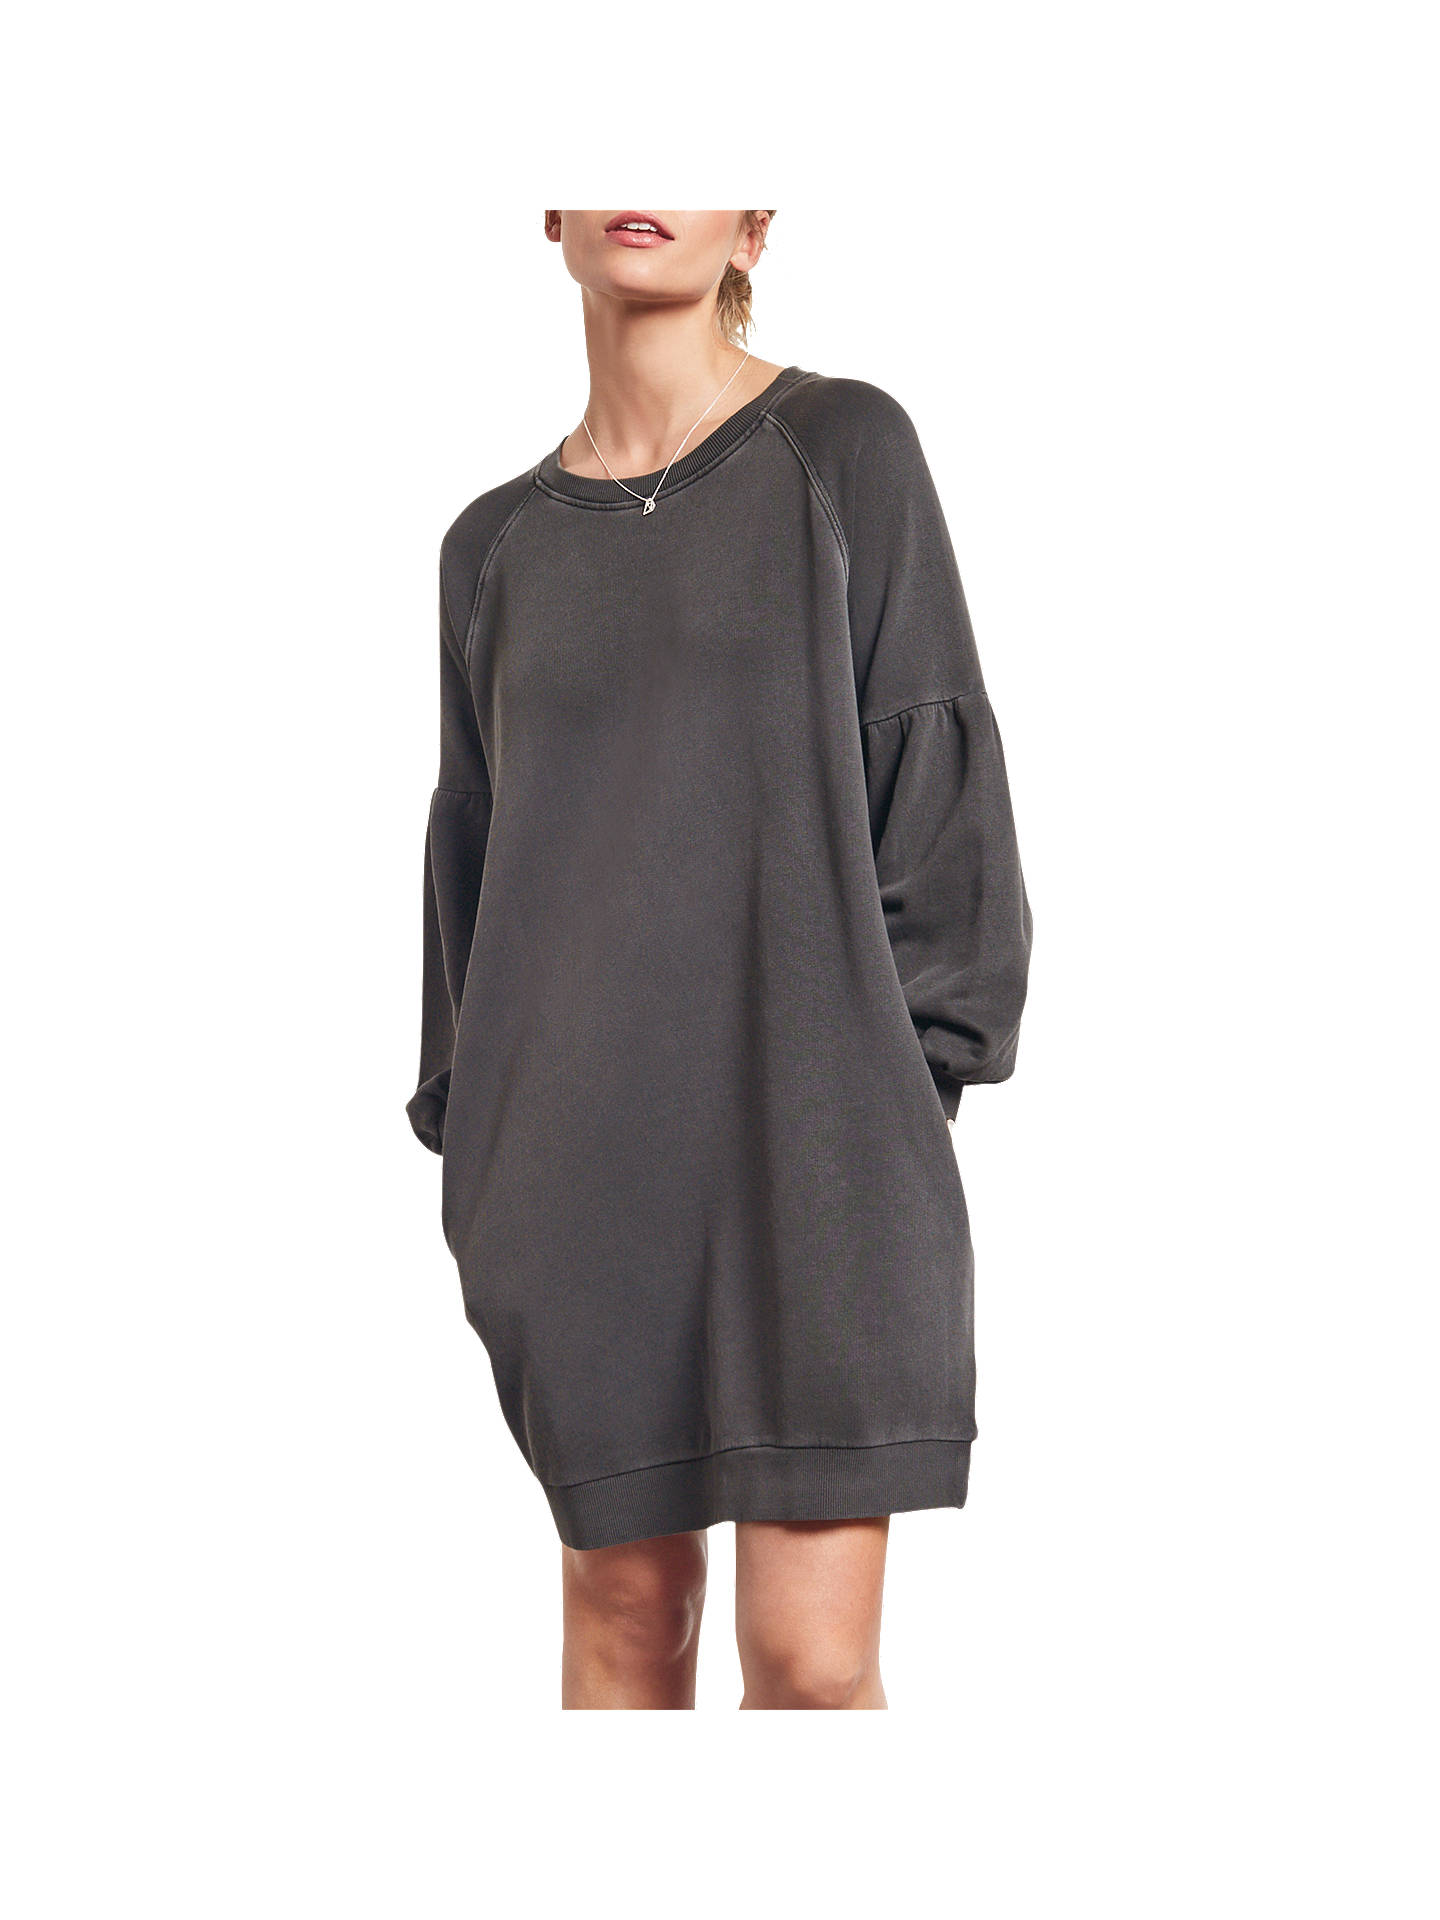 33c5e63449df Buy hush Puff Sleeve Sweatshirt Dress, Washed Black, XS Online at  johnlewis.com ...